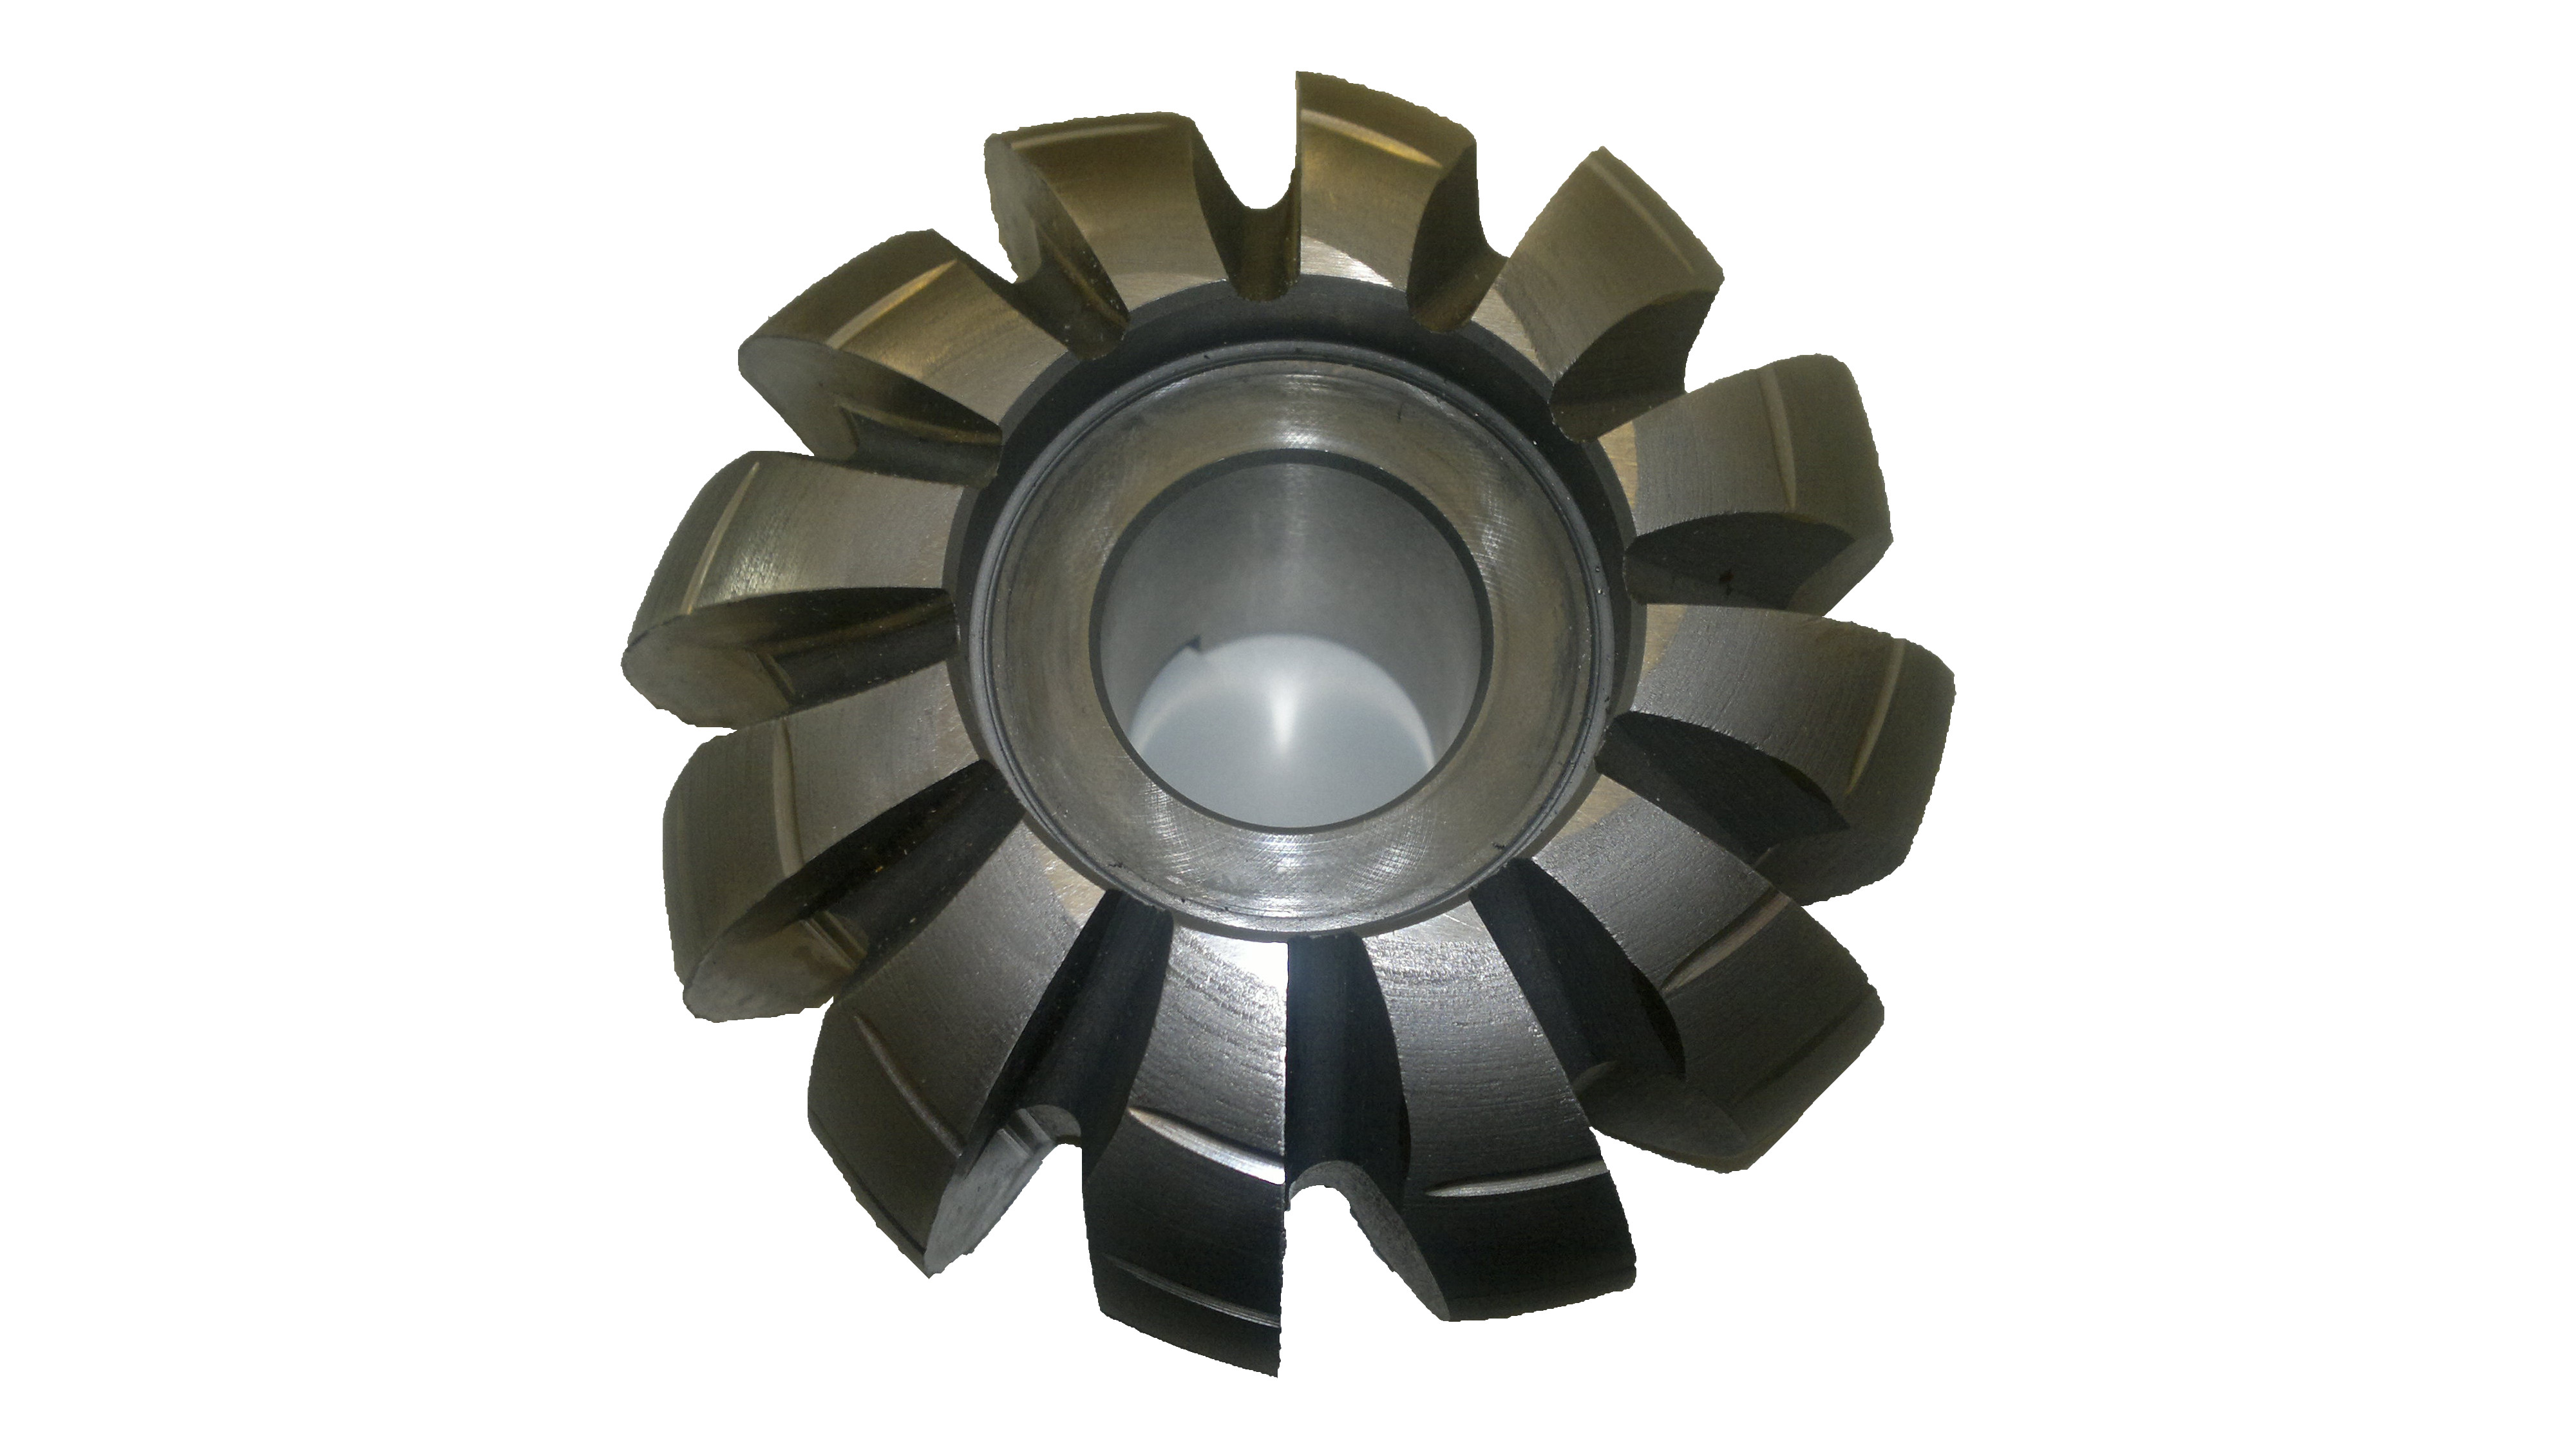 Special Spherical Cutteing-mill